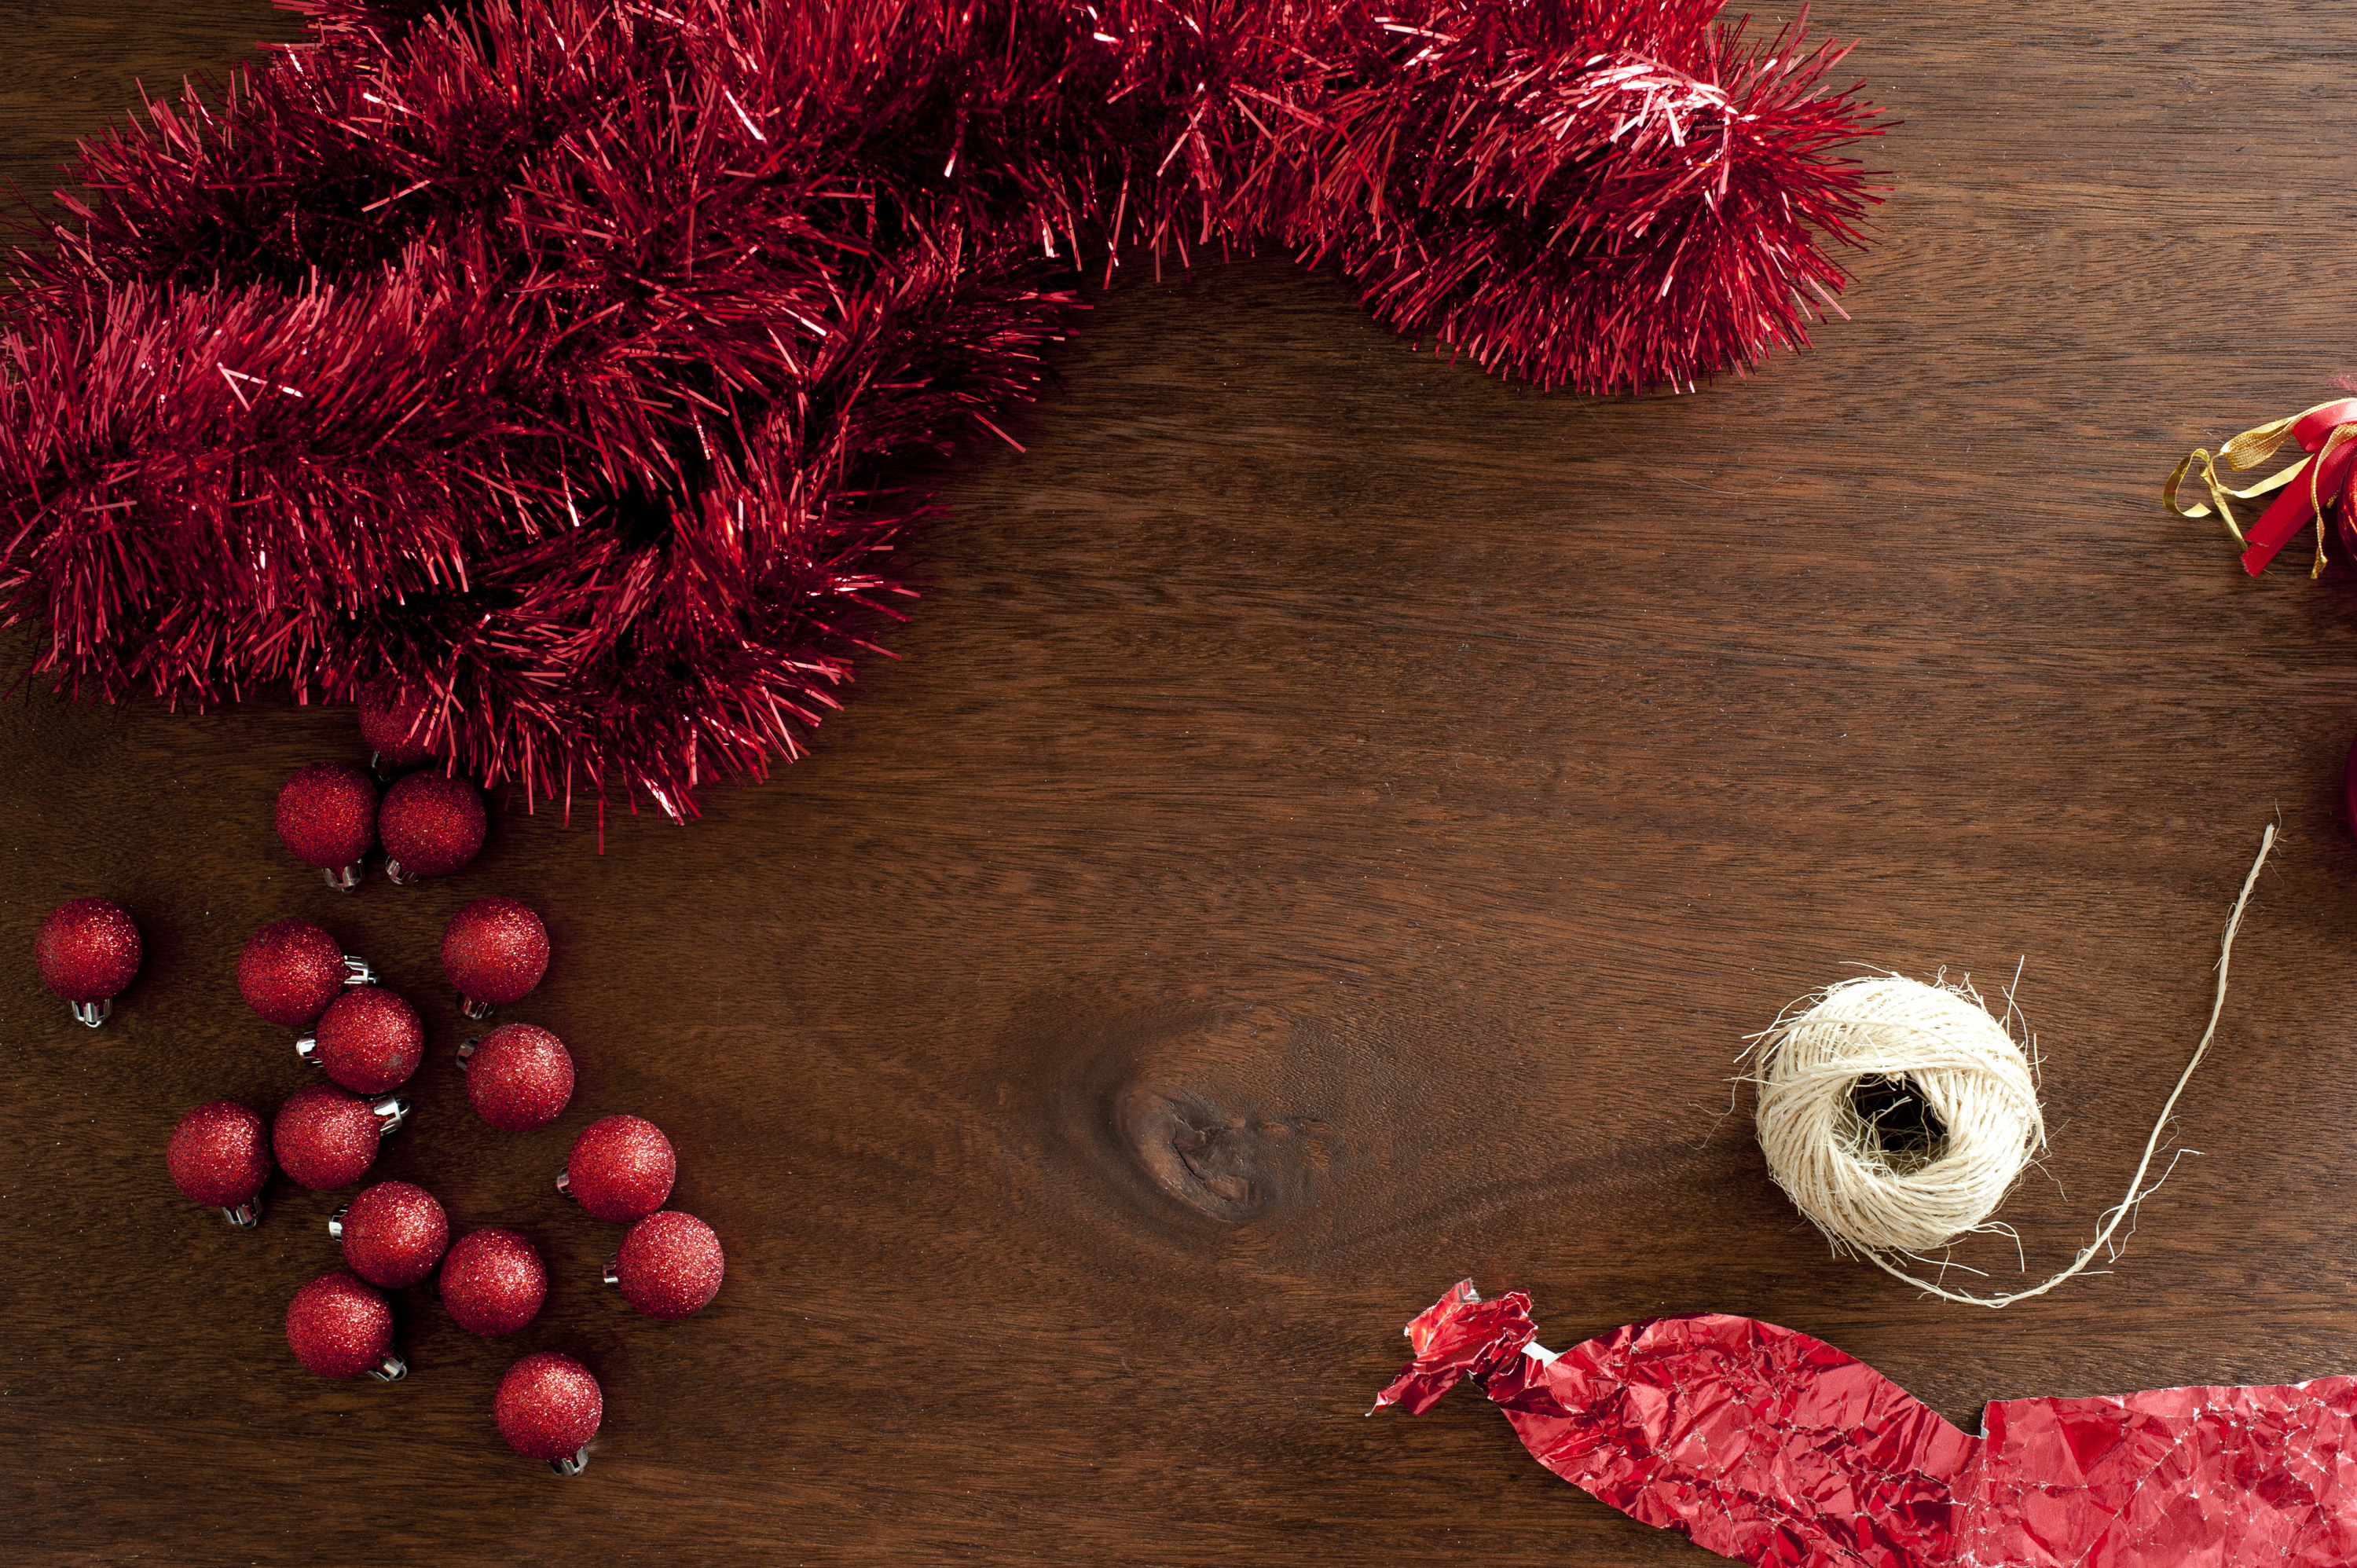 Red Christmas decorative elements: rope, glare, wrapping and balls on wooden table. From above